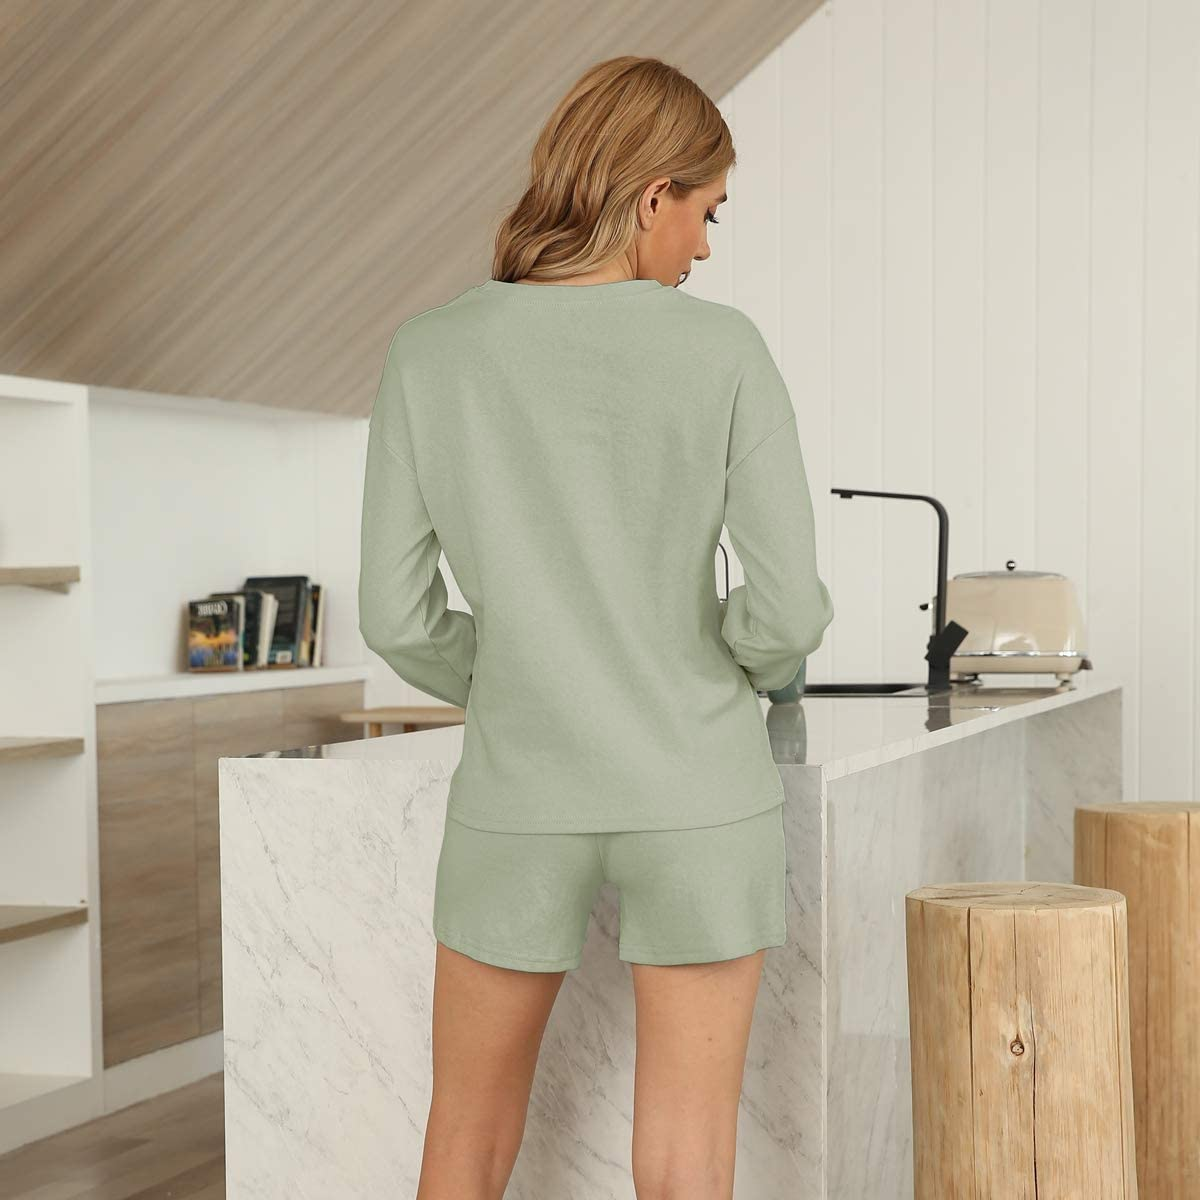 Lounge Sets for Women 2 Piece Outfits Long Sleeve Jogger Tops and Shorts Pajamas Set Sleepwear Nightwear